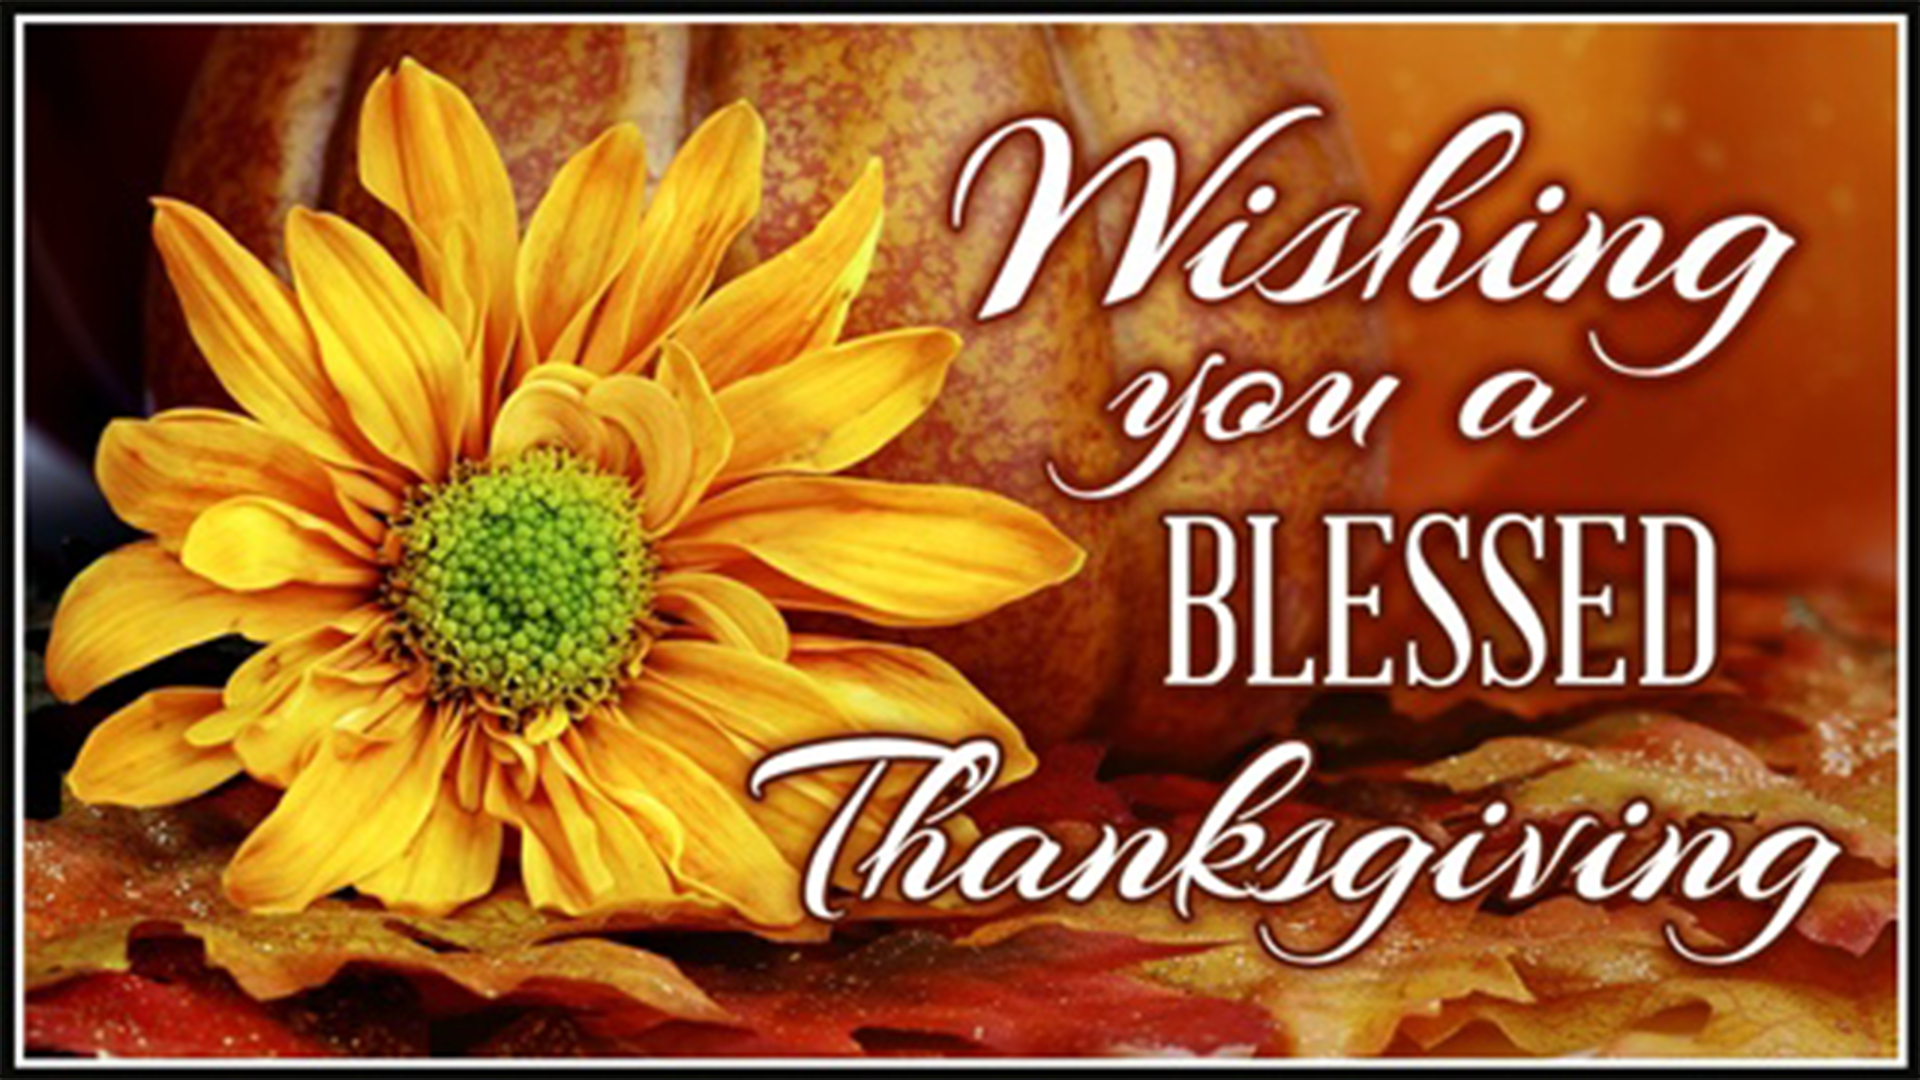 Happy thanksgiving pictures hd images 2017 thanksgiving greetings kristyandbryce Choice Image